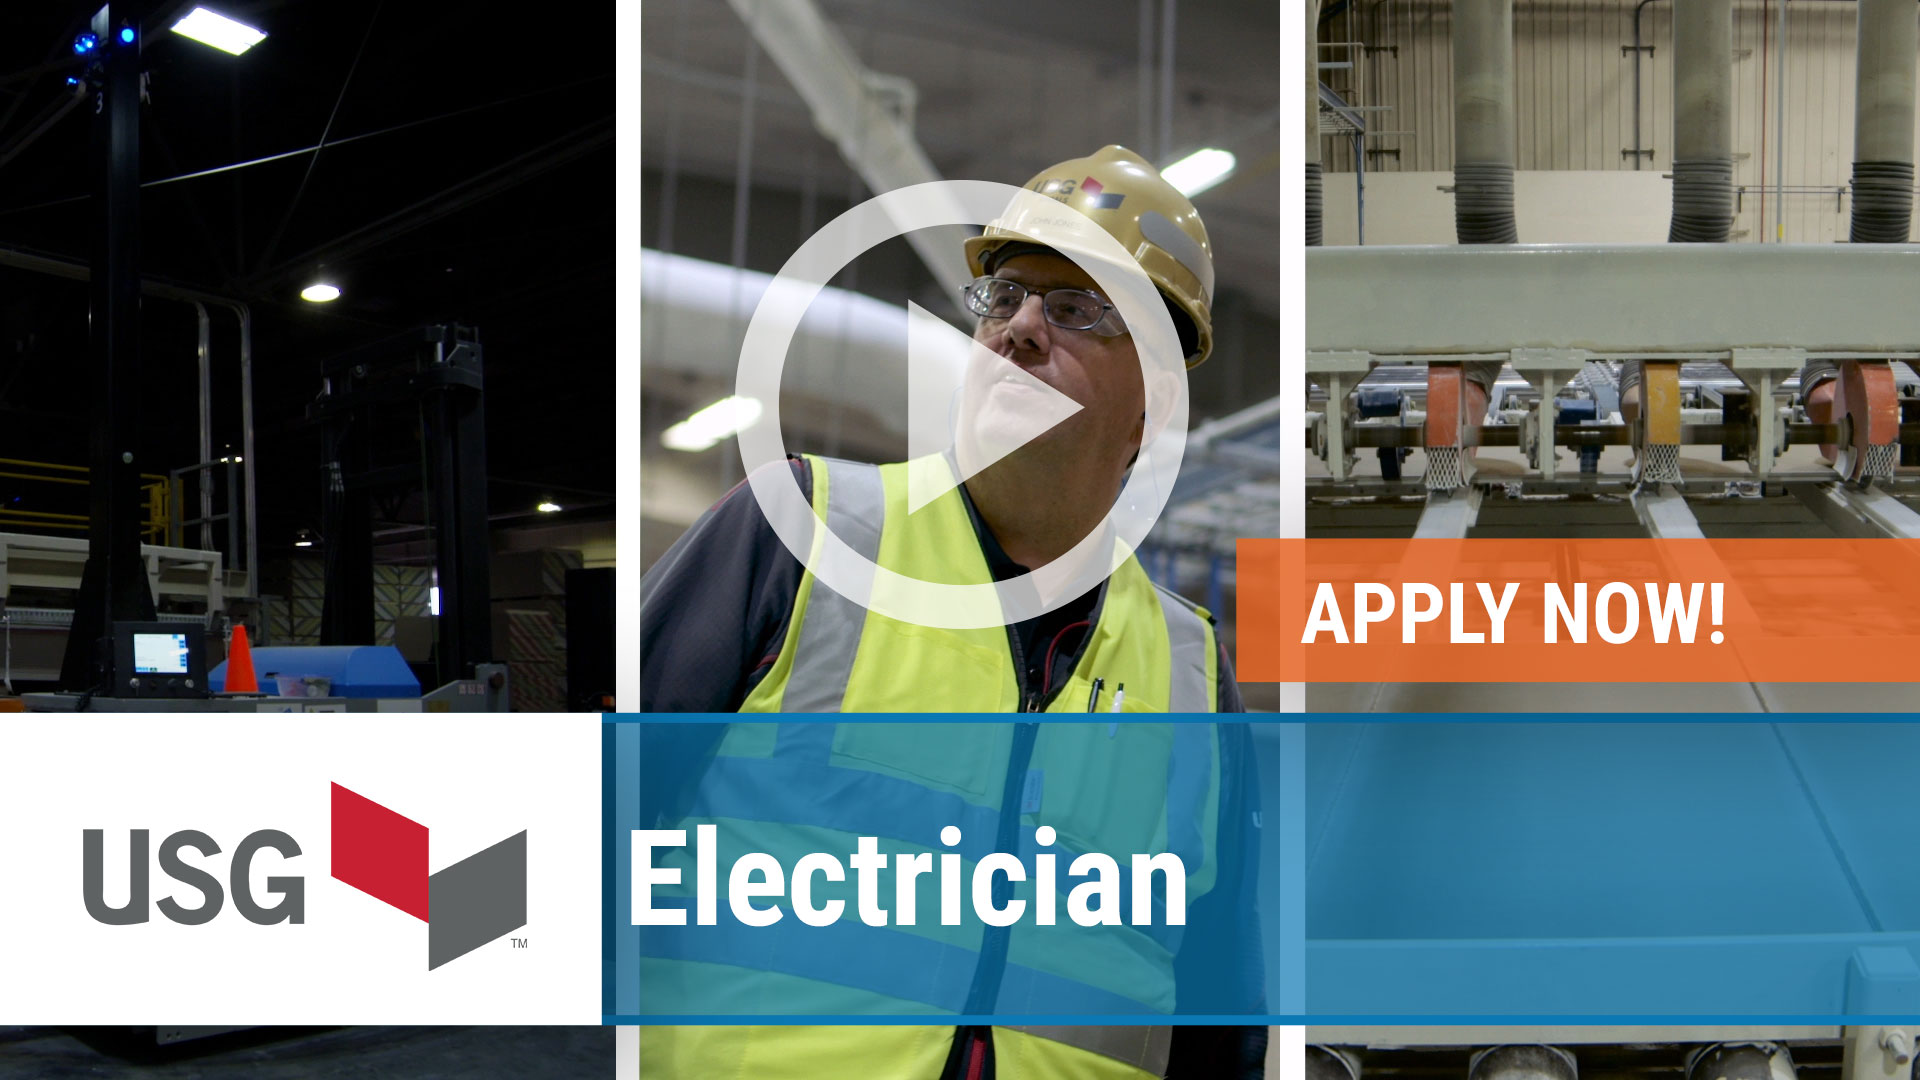 Watch our careers video for available job opening Industrial Electrician with PLC Experience in Cartersville, Georgia, USA